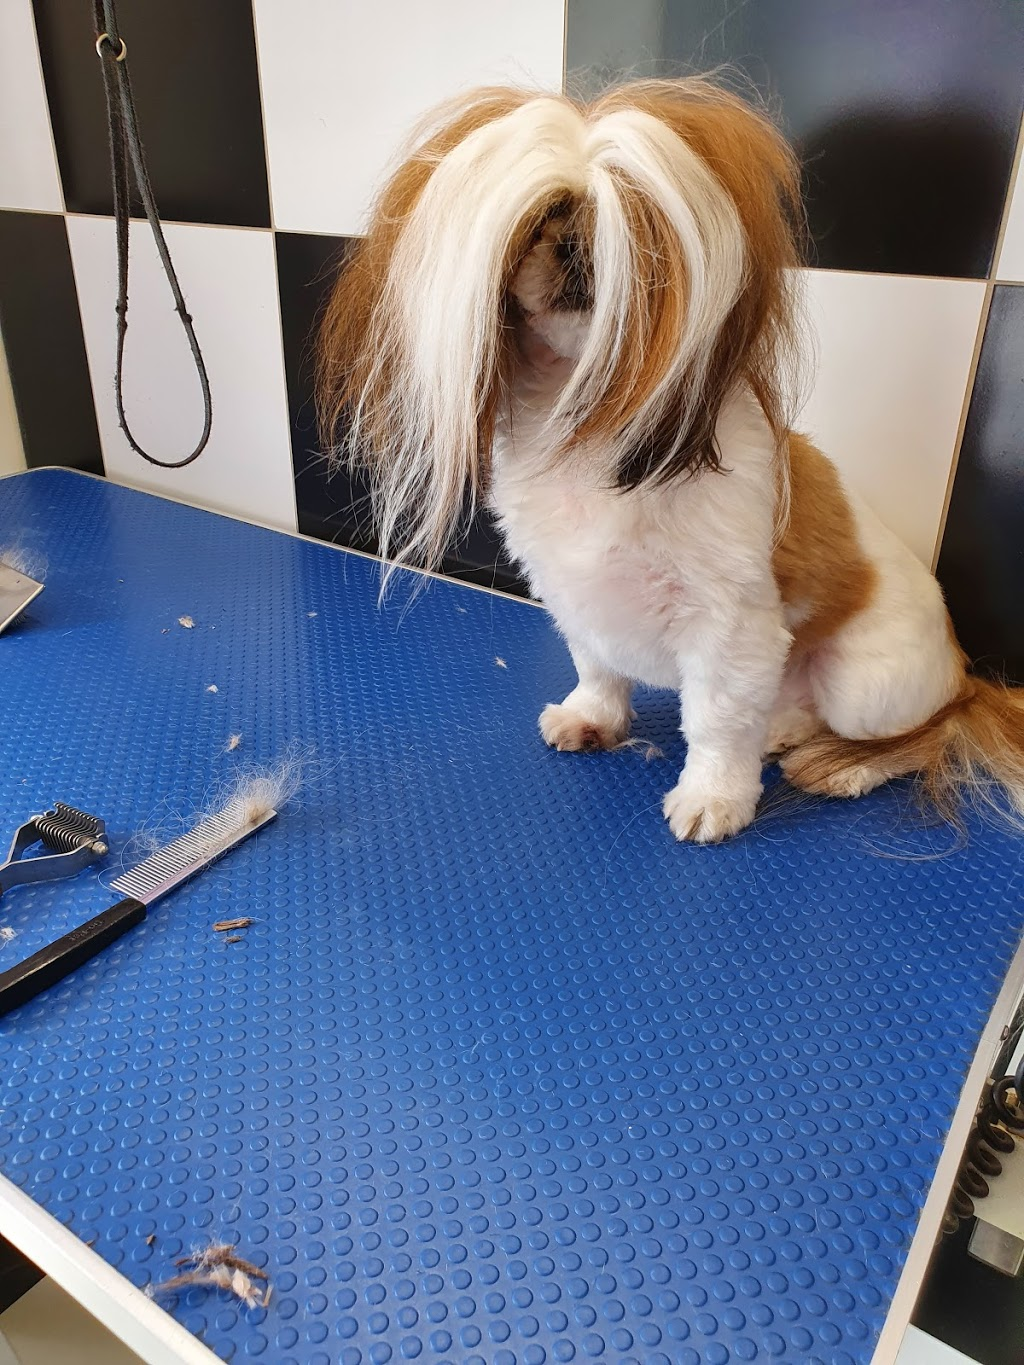 Maureen s Pet Grooming Parlour | point of interest | 37 Sutton Rd, Maryborough VIC 3465, Australia | 0414760698 OR +61 414 760 698